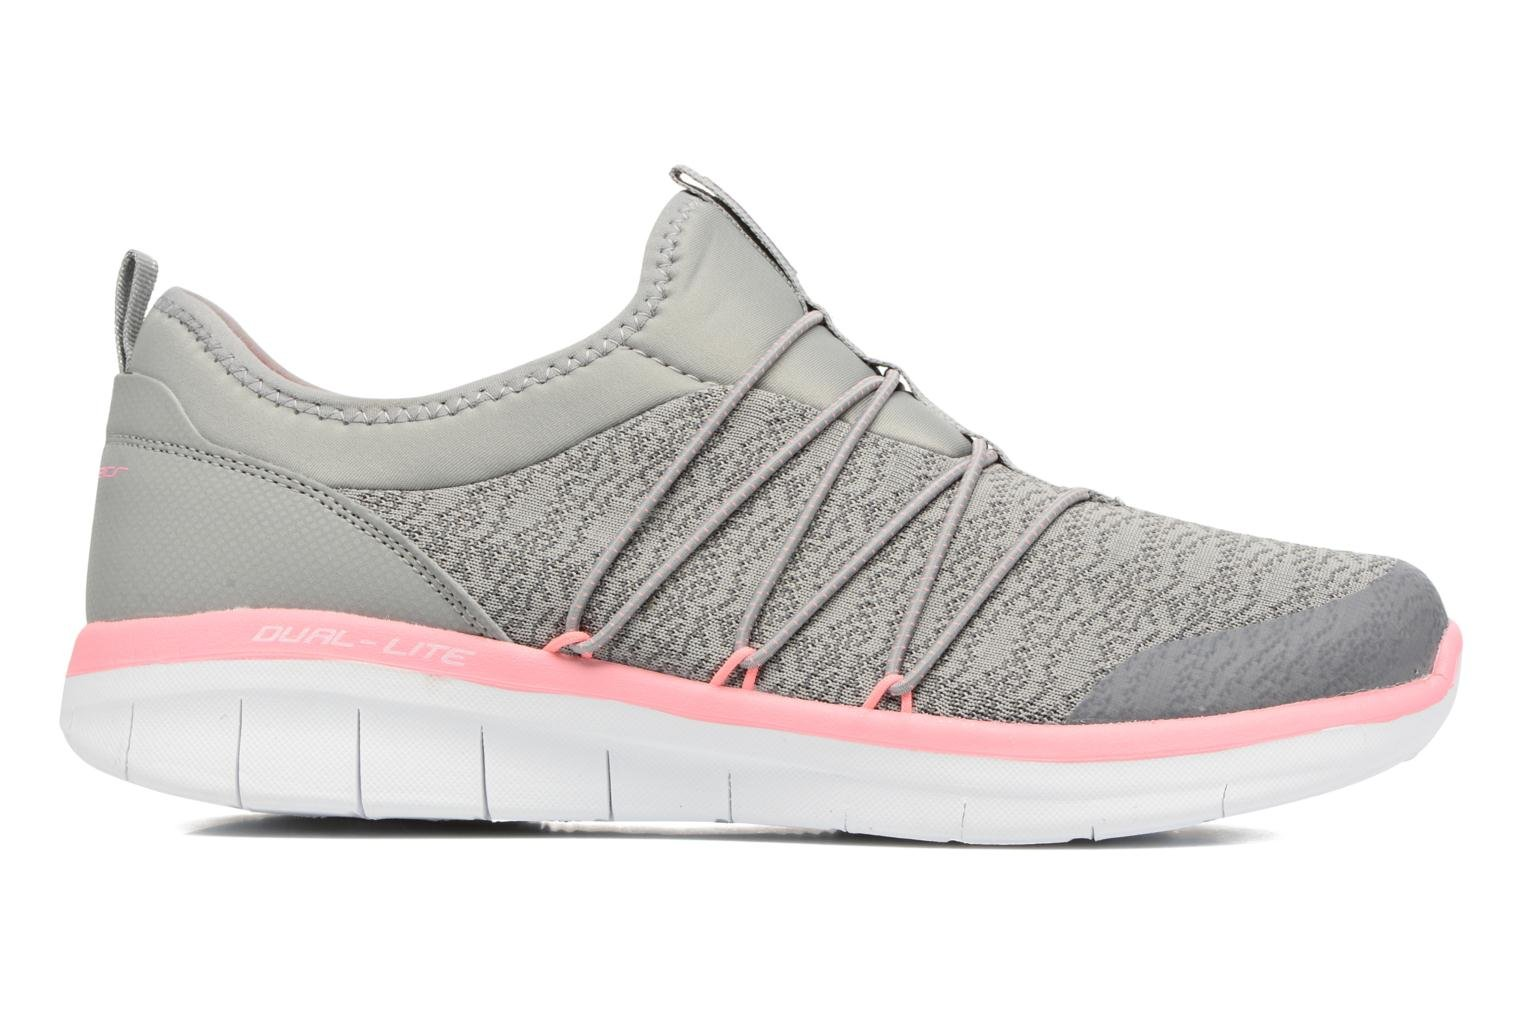 0 Skechers Chic Synergy Gypk Simply 2 qx6vC